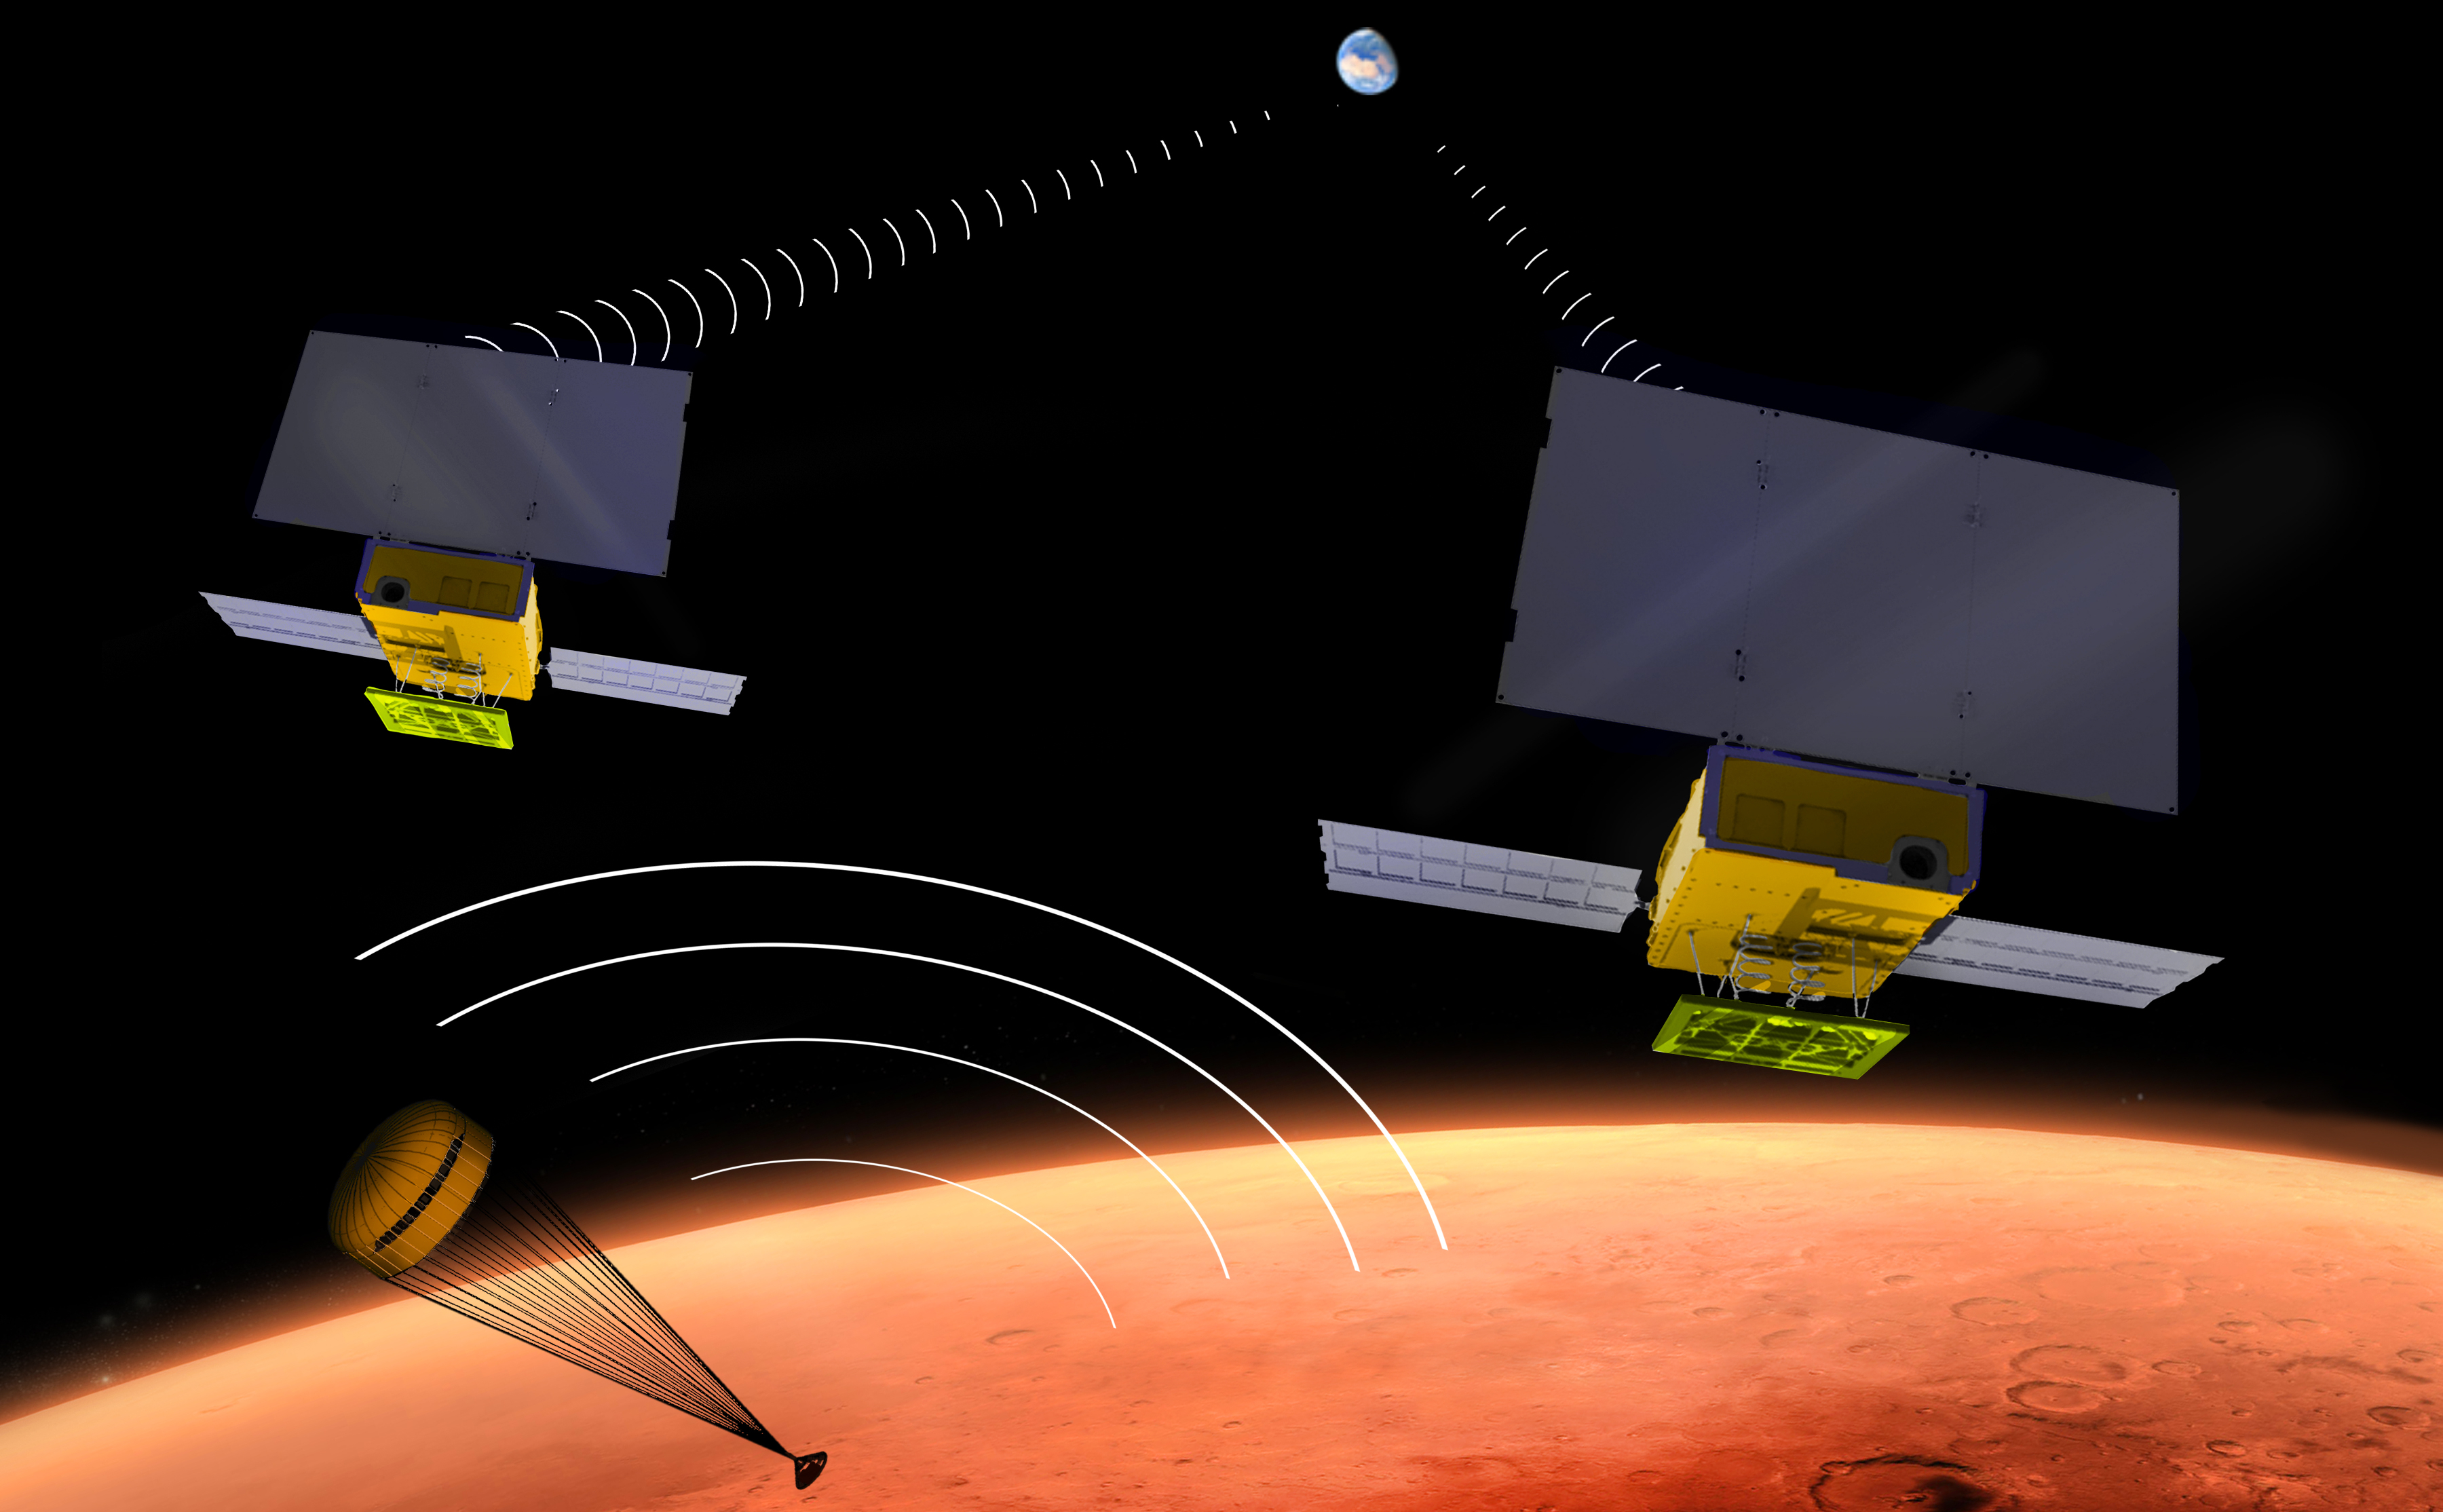 Artist's concept showing two small satellites flying over Mars as the InSight lander parachutes through the surface of Mars.